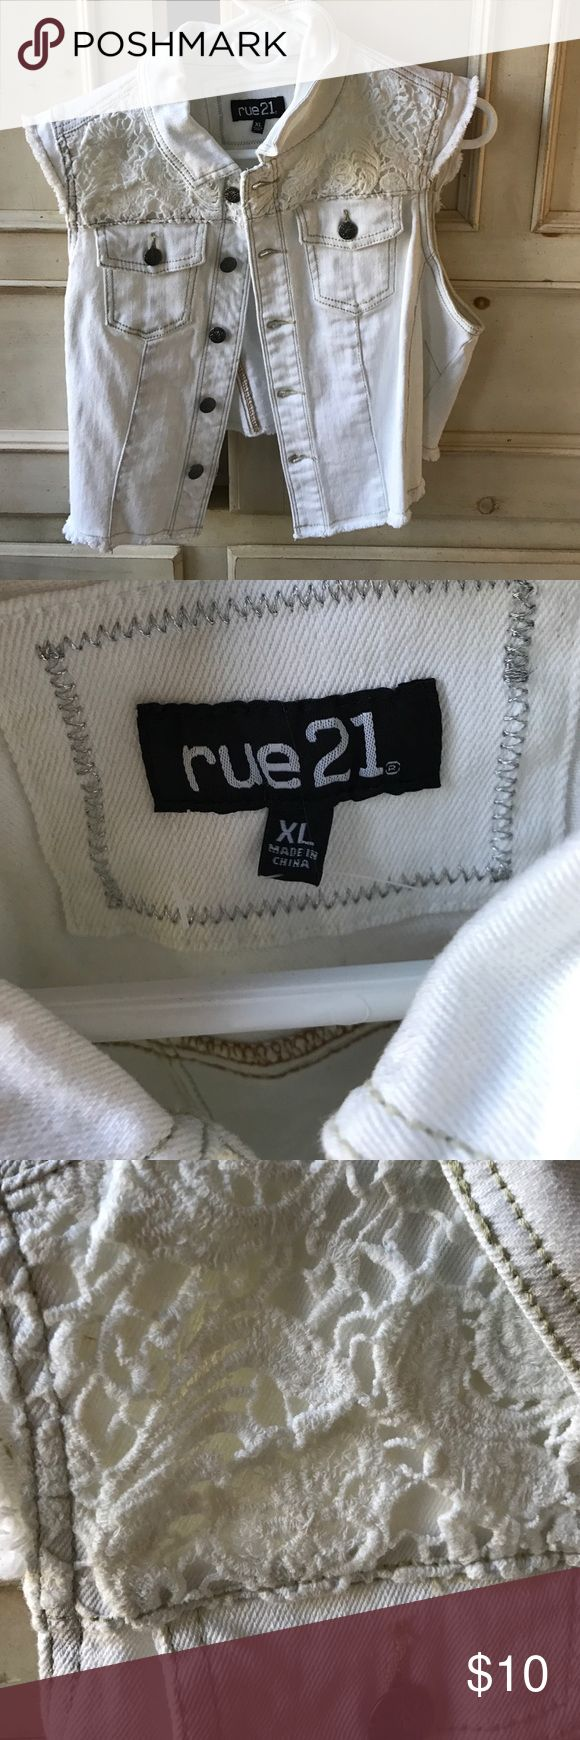 White denim vest New! Never worn, purchases wrong size. Shorter in back, longer in front with lace detailing in the front. Rue 21 Jackets & Coats Vests